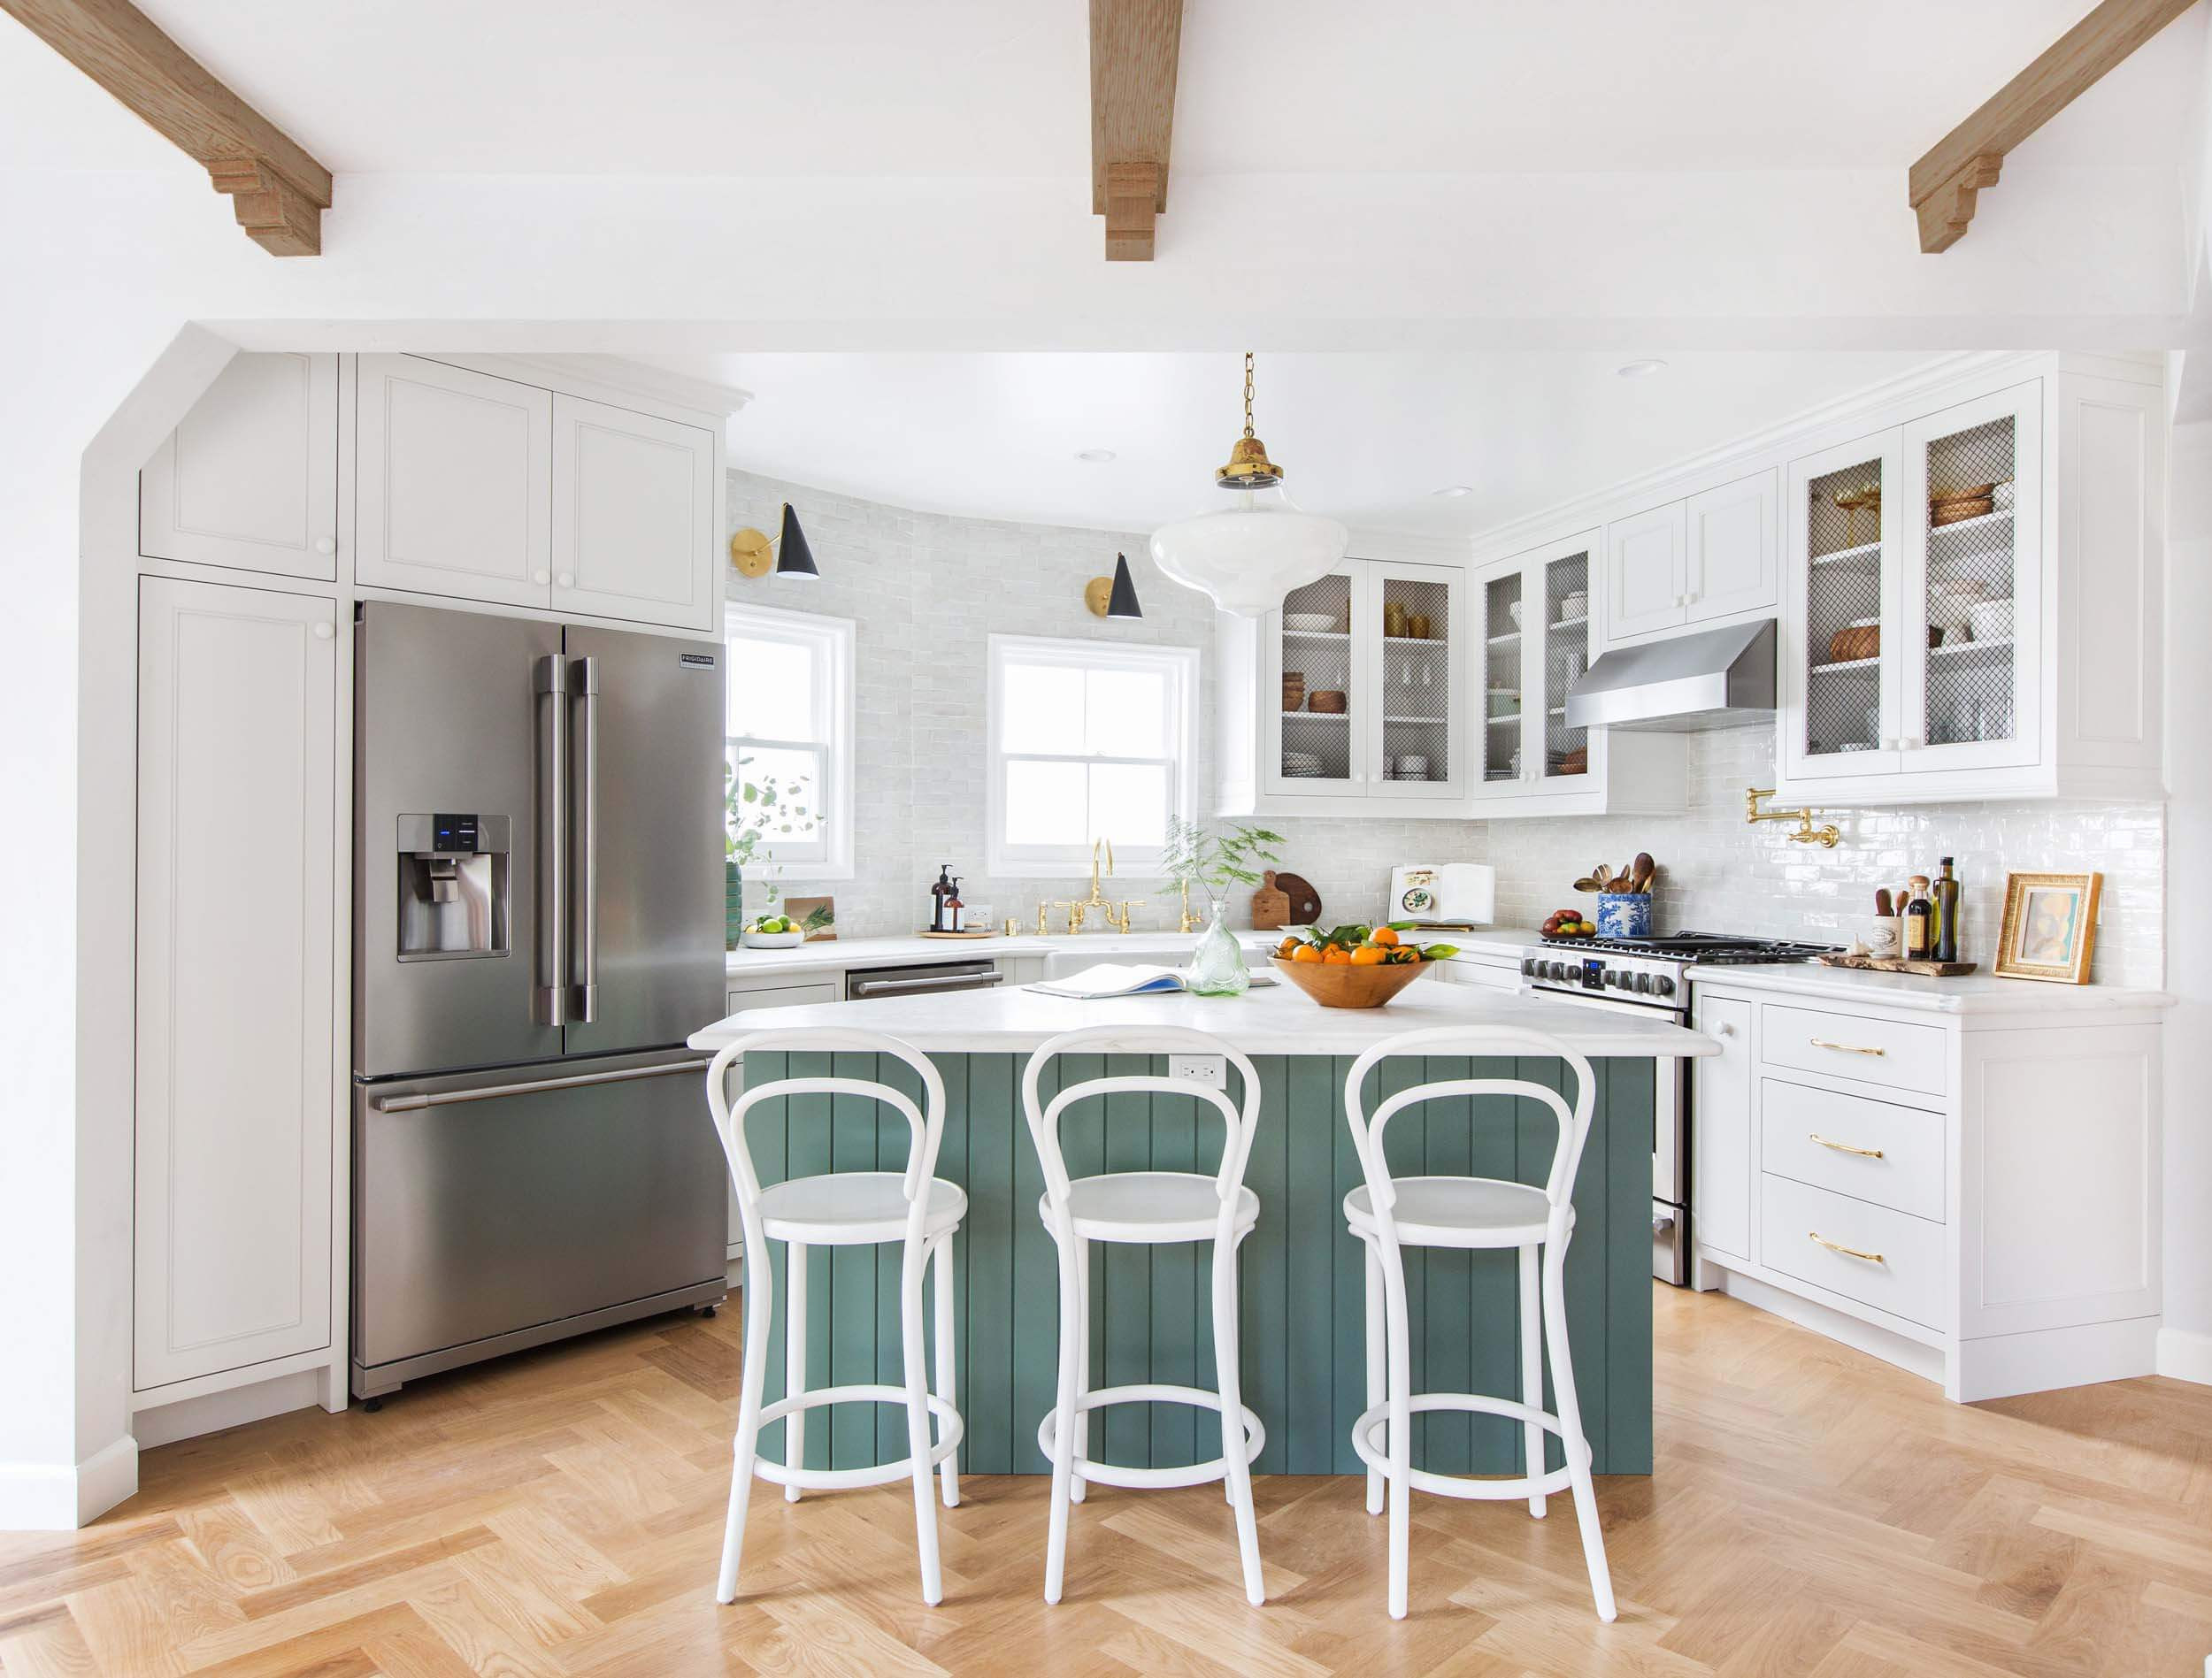 Hardwood Flooring Scraps Of My Kitchen Design A Year Later Lots to Love some Regrets Emily Pertaining to Emily Henderson Frigidaire Kitchen Reveal Waverly English Modern Edited Beams 121